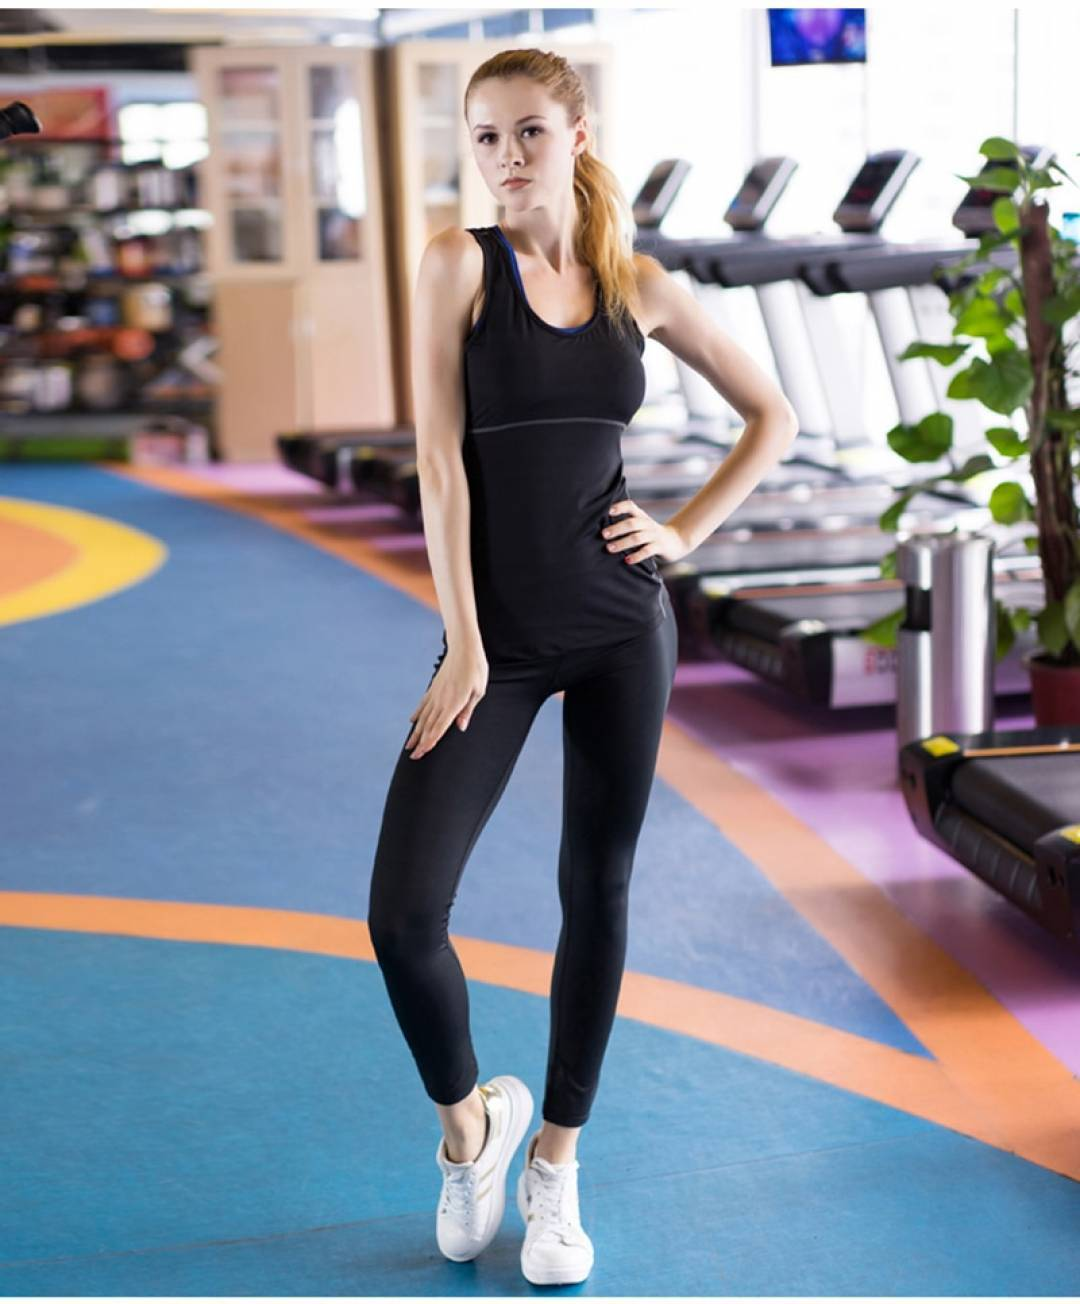 Training Sleeveless Top for Women Womens Clothing Tops & T-shirts